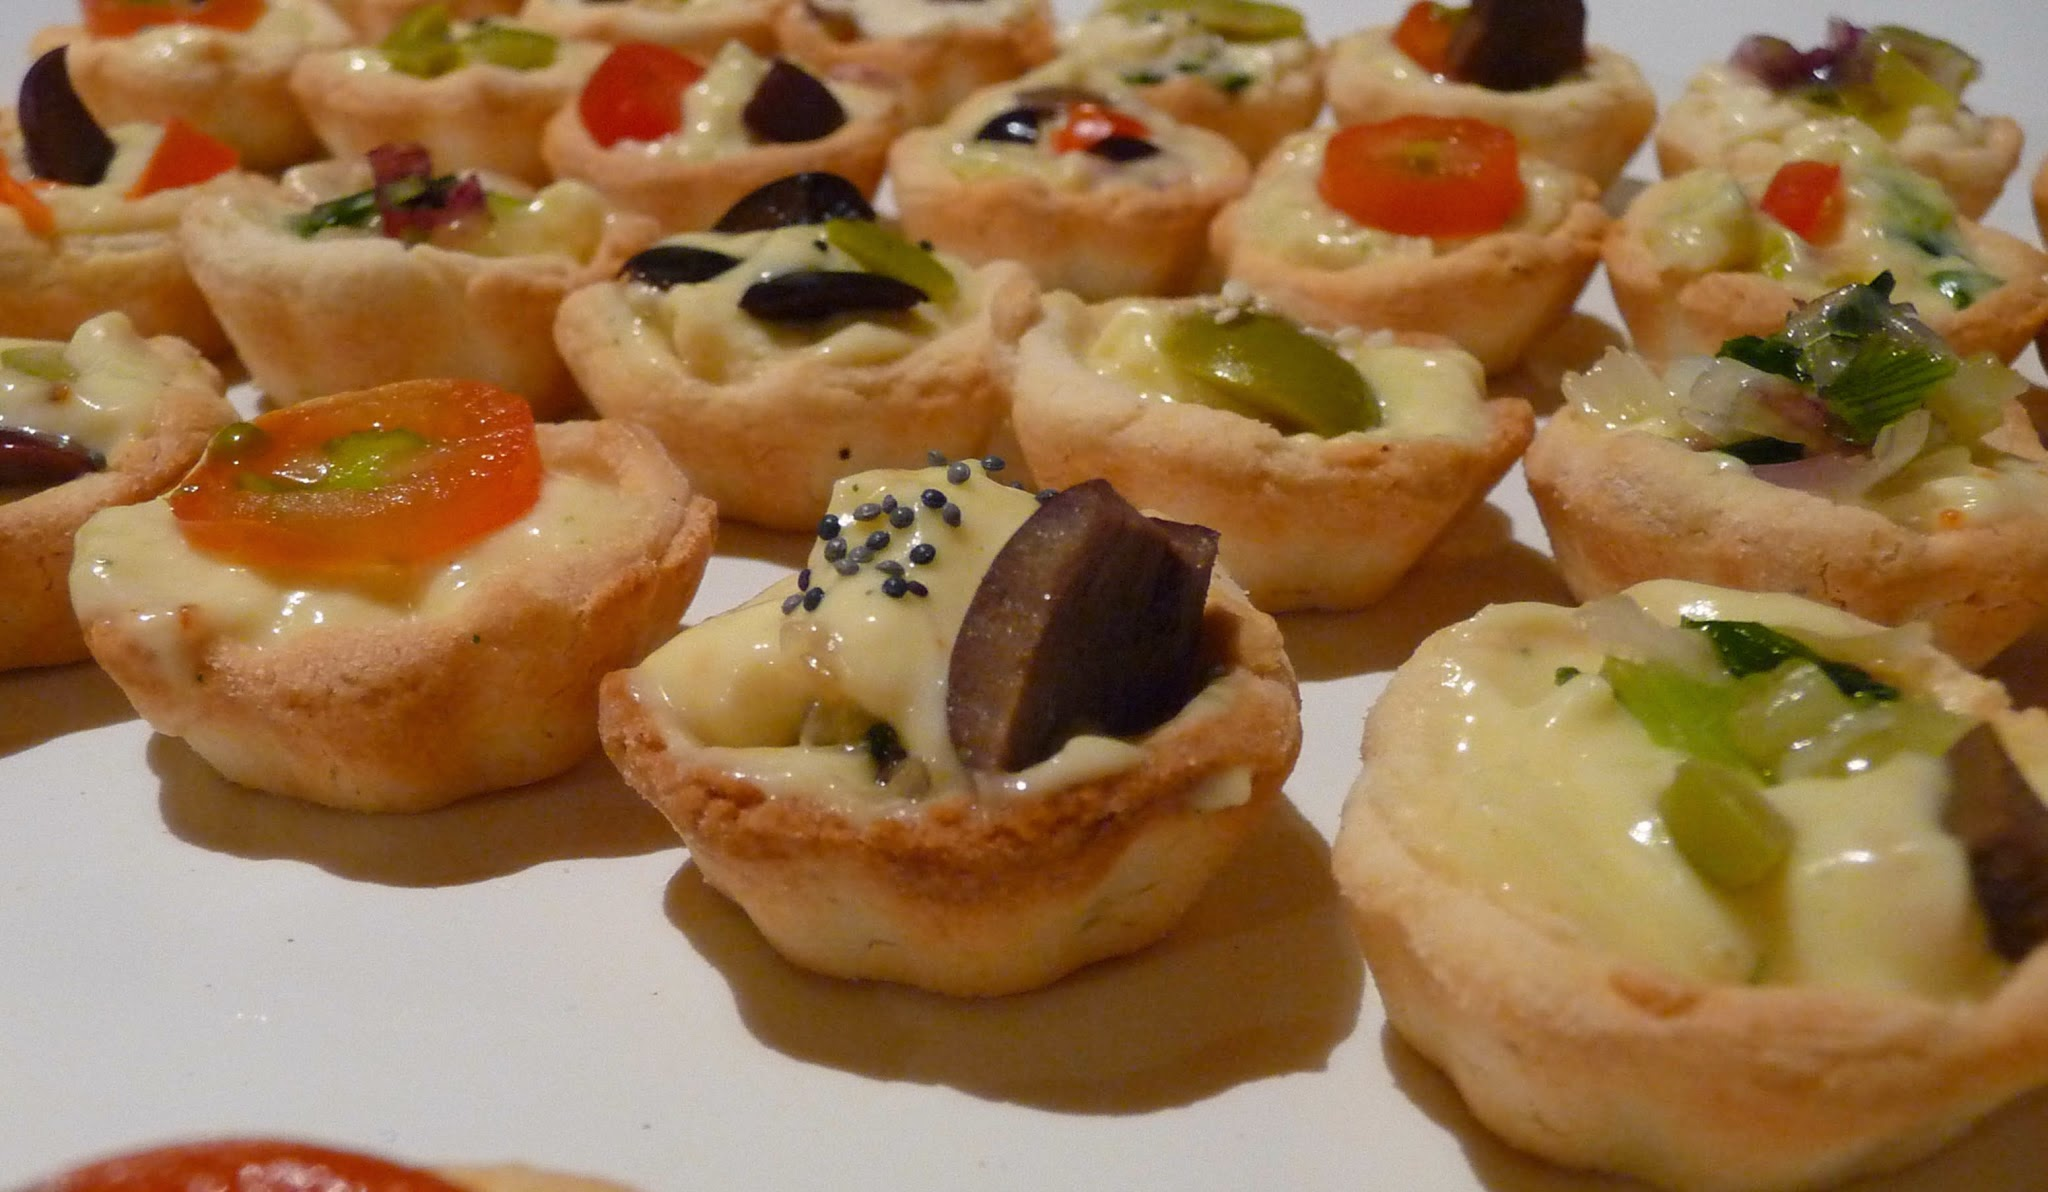 image - a variety of Canapes that might be served at Bobcaygeon Chamber of Commerce Awards Banquet in Dunsford KAwartha Lakes linked to free image source